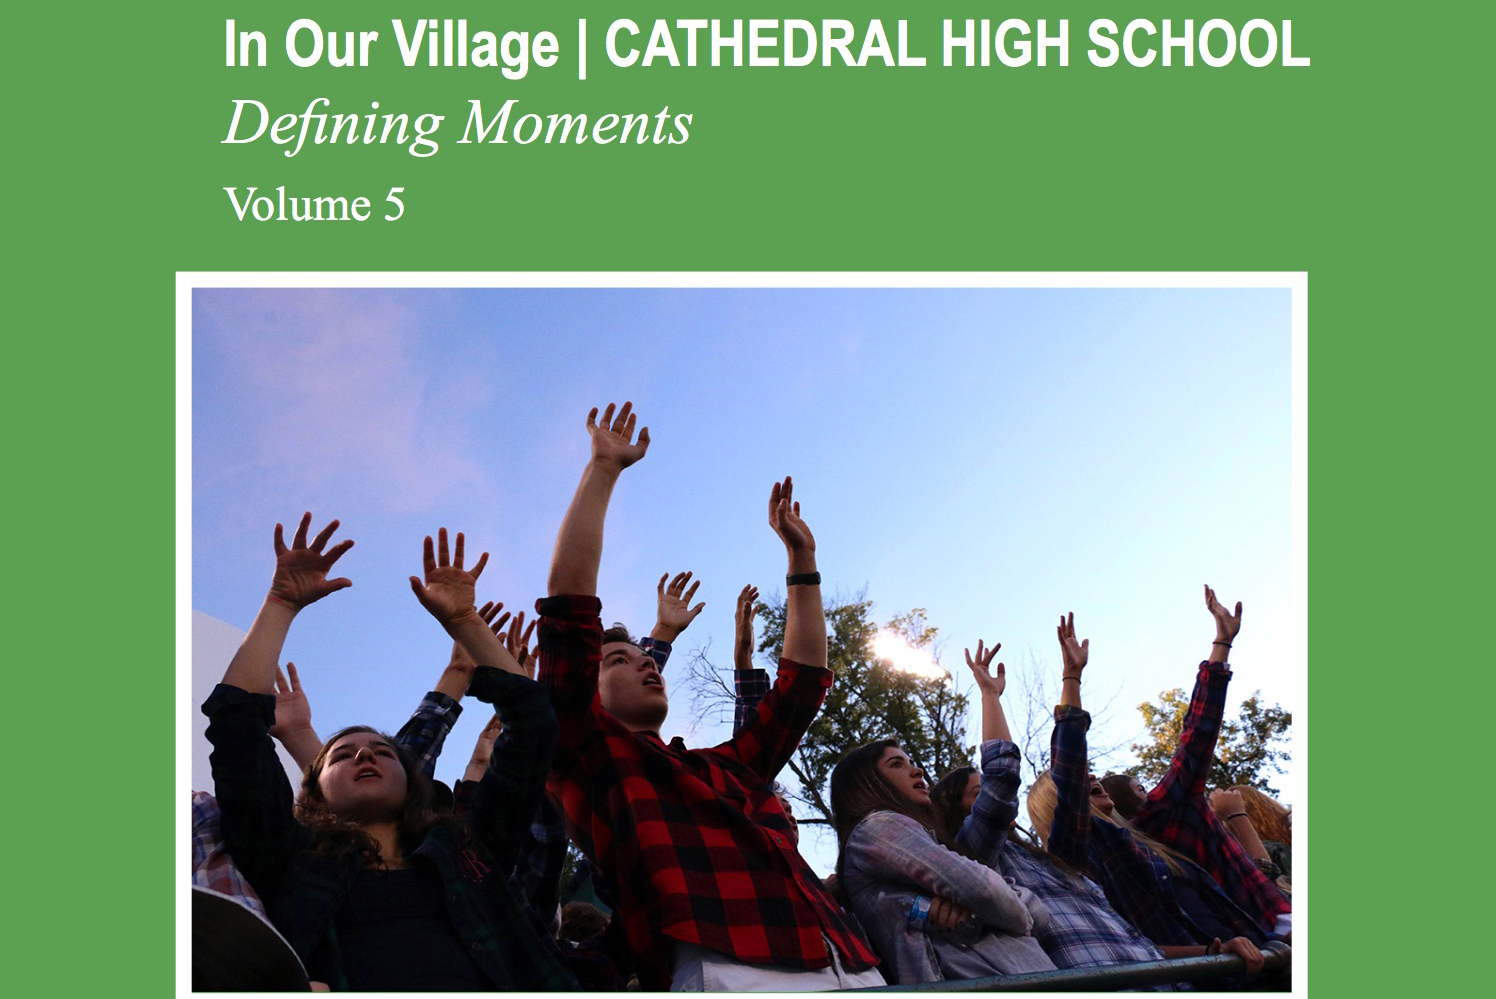 A photo by junior Caroline Steiger was chosen for cover of this year's edition of the In Our Village book.